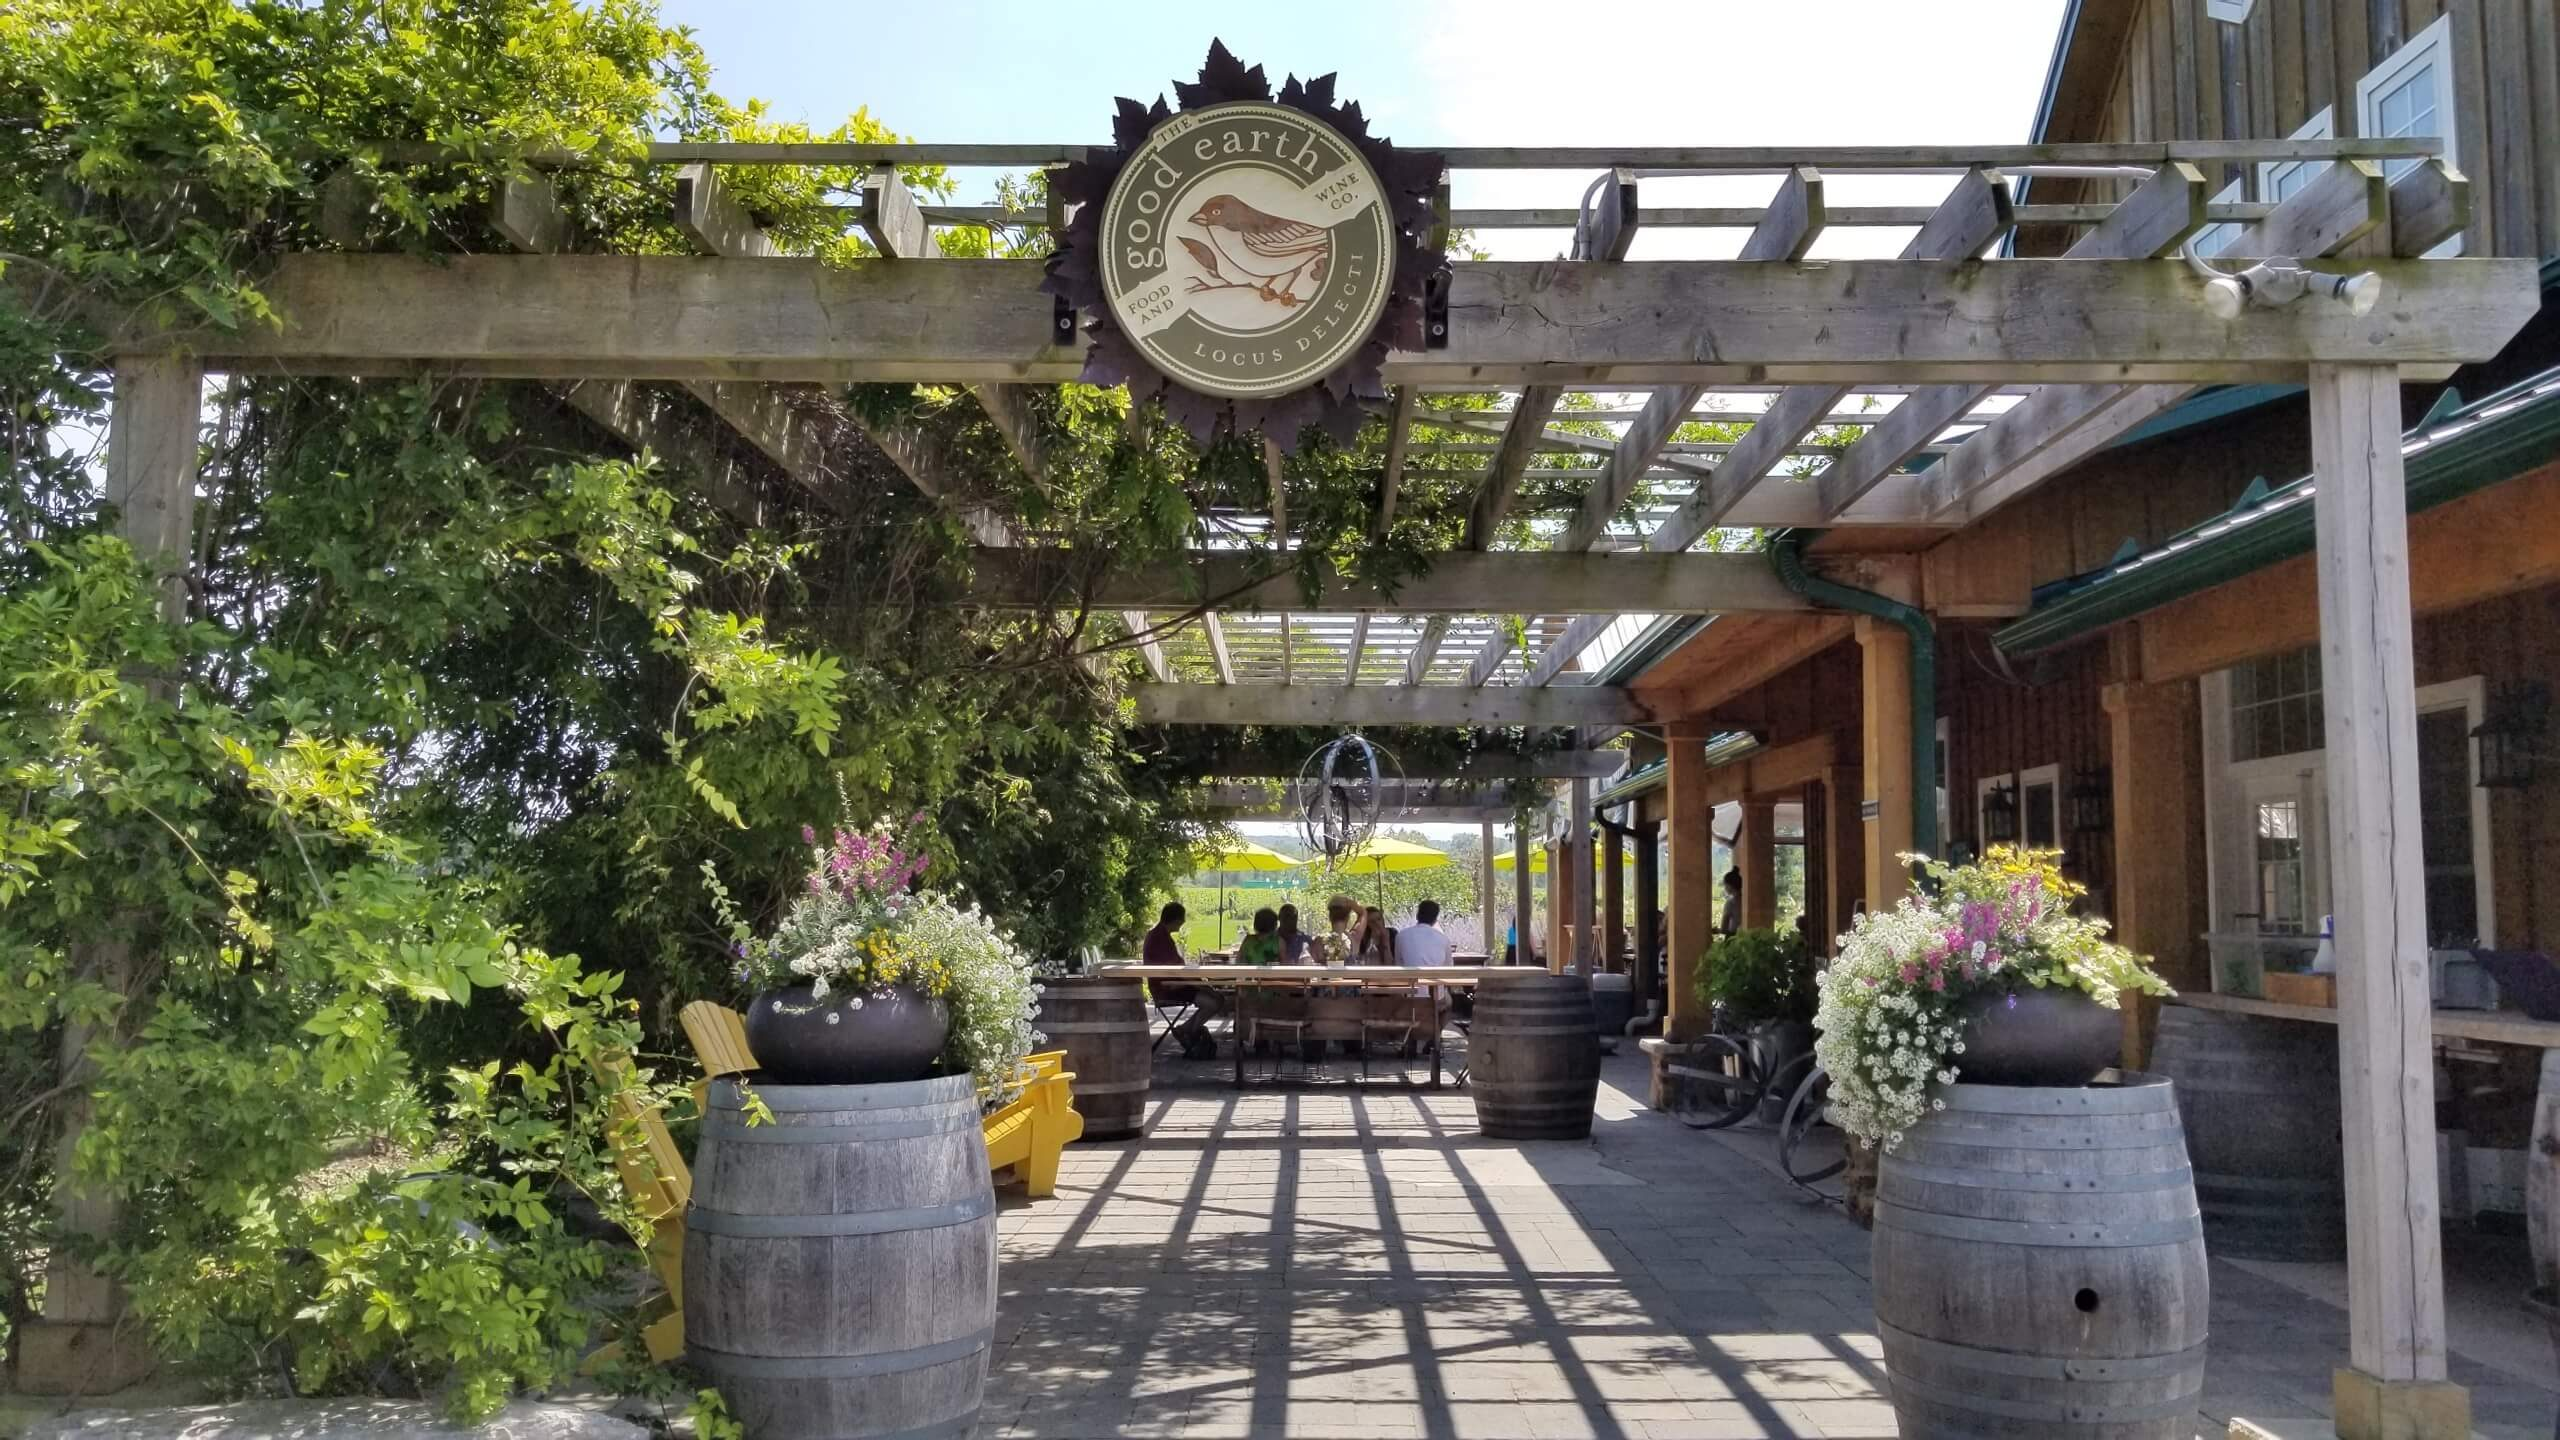 Good Earth Vineyard and Restaurant Niagara Ontario Canada